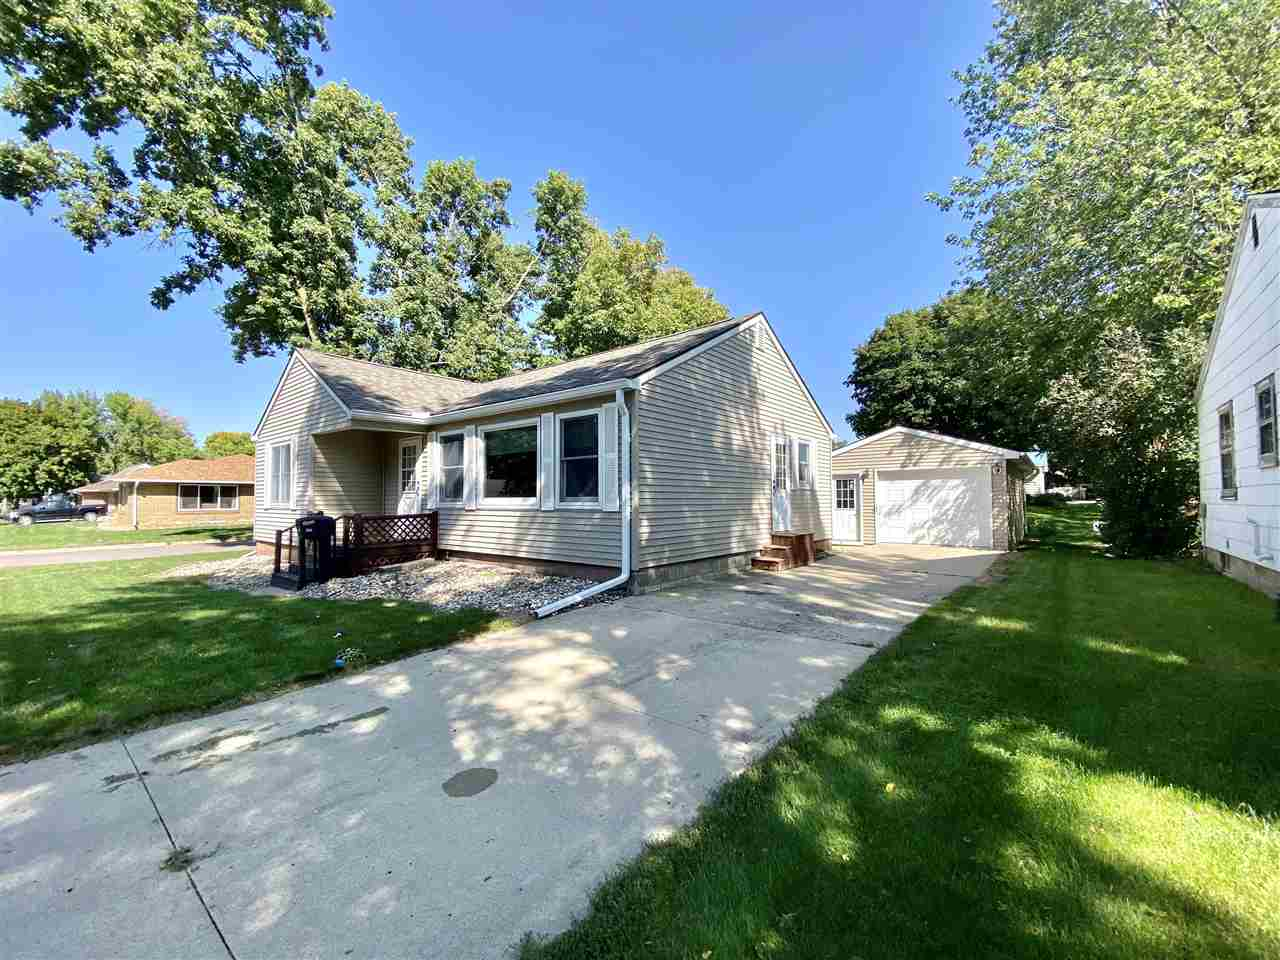 214 N 15th Street, Estherville, IA 51334